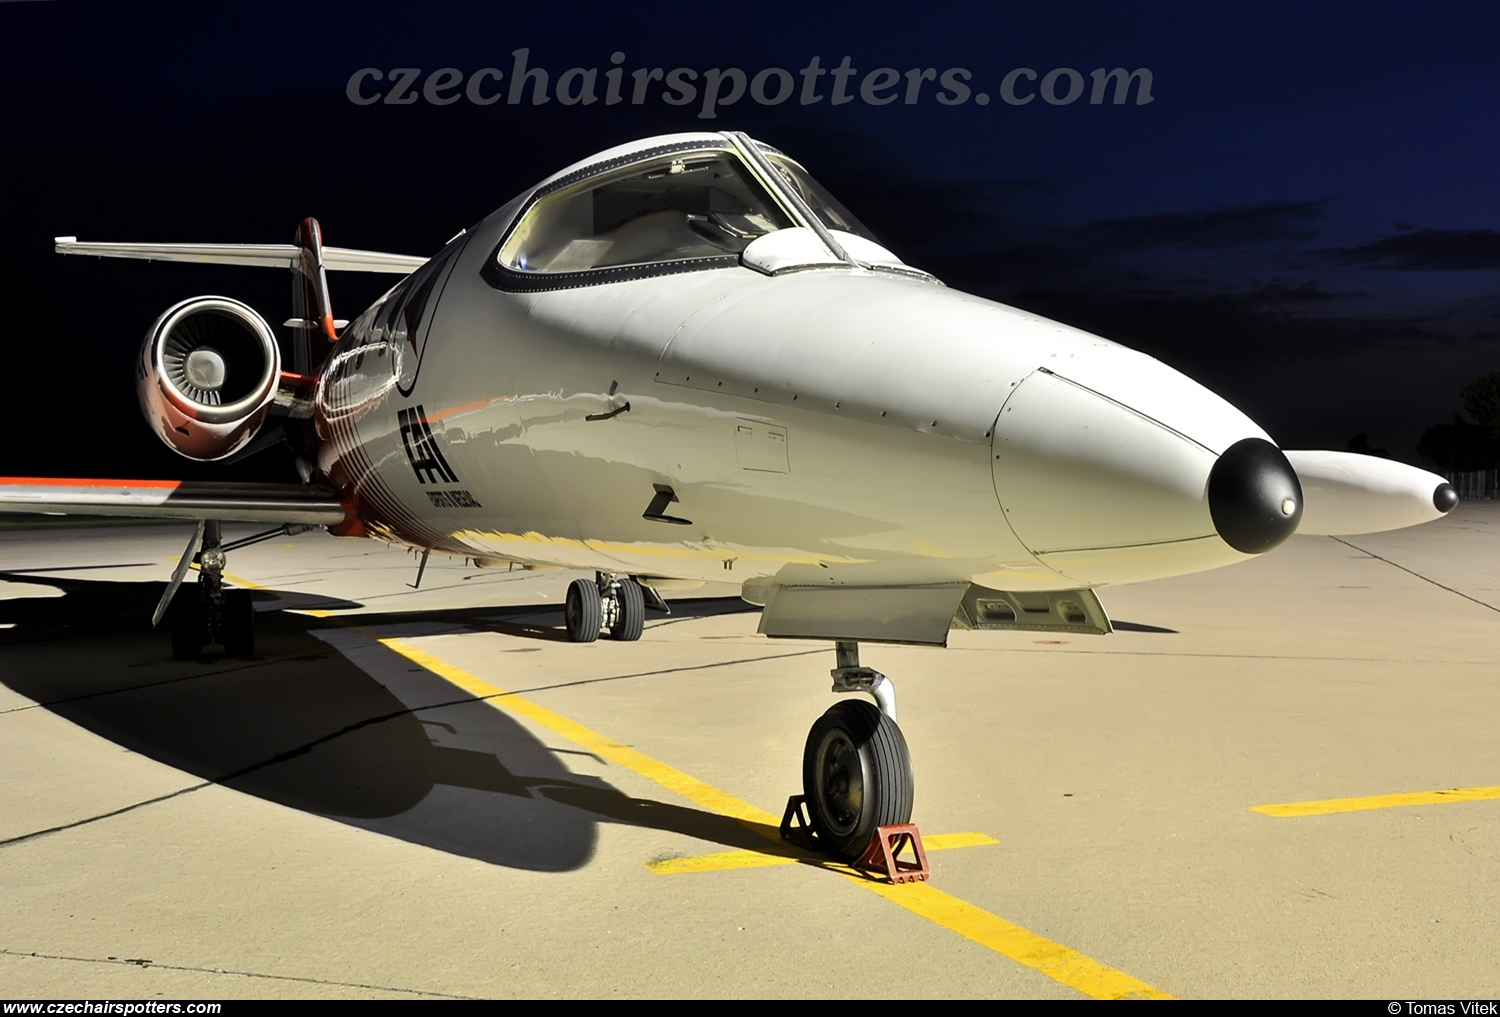 FAI - Flight Ambulance International – Bombardier Gates Learjet 35A/ZR D-CFAX